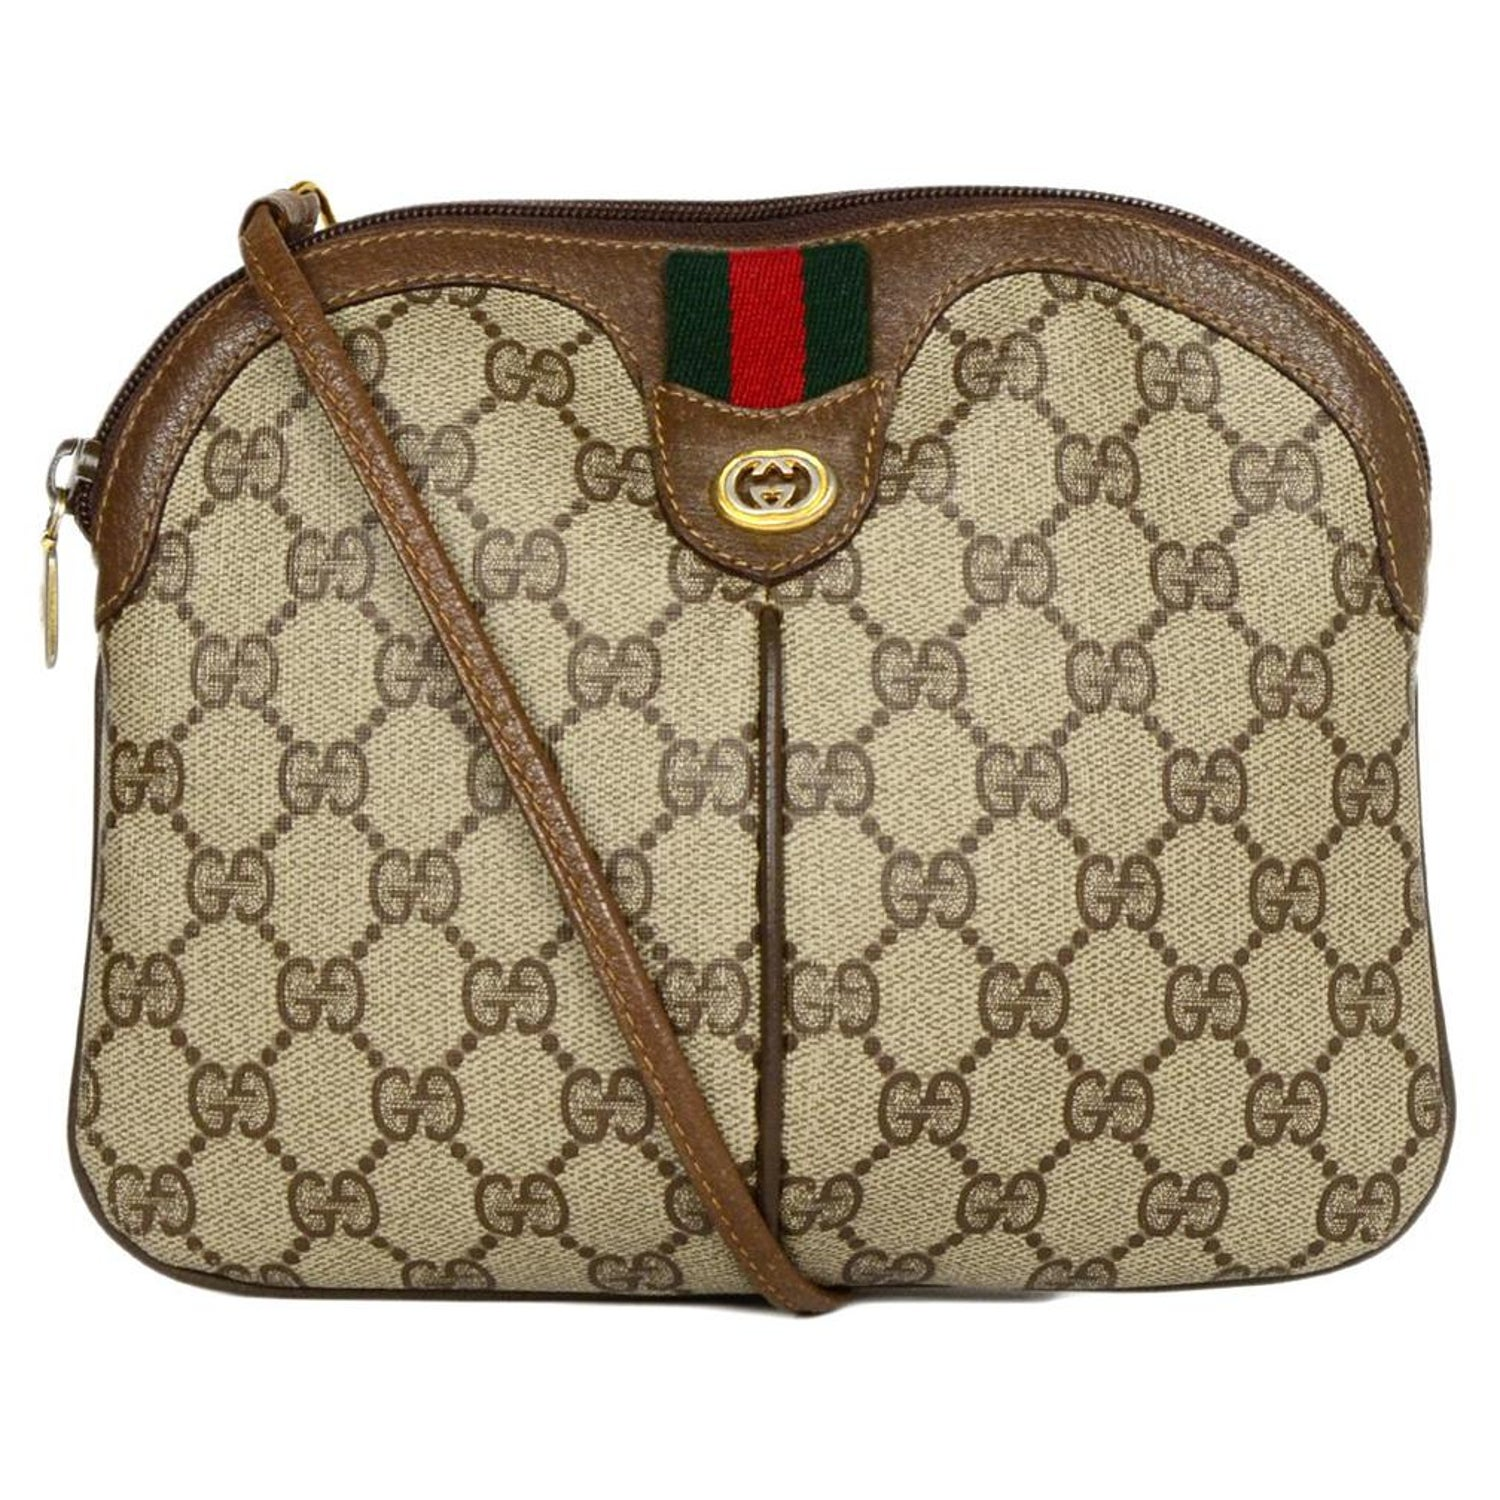 01b027940650 Gucci Vintage GG Monogram/Leather Supreme Crossbody Bag W/ Web For Sale at  1stdibs